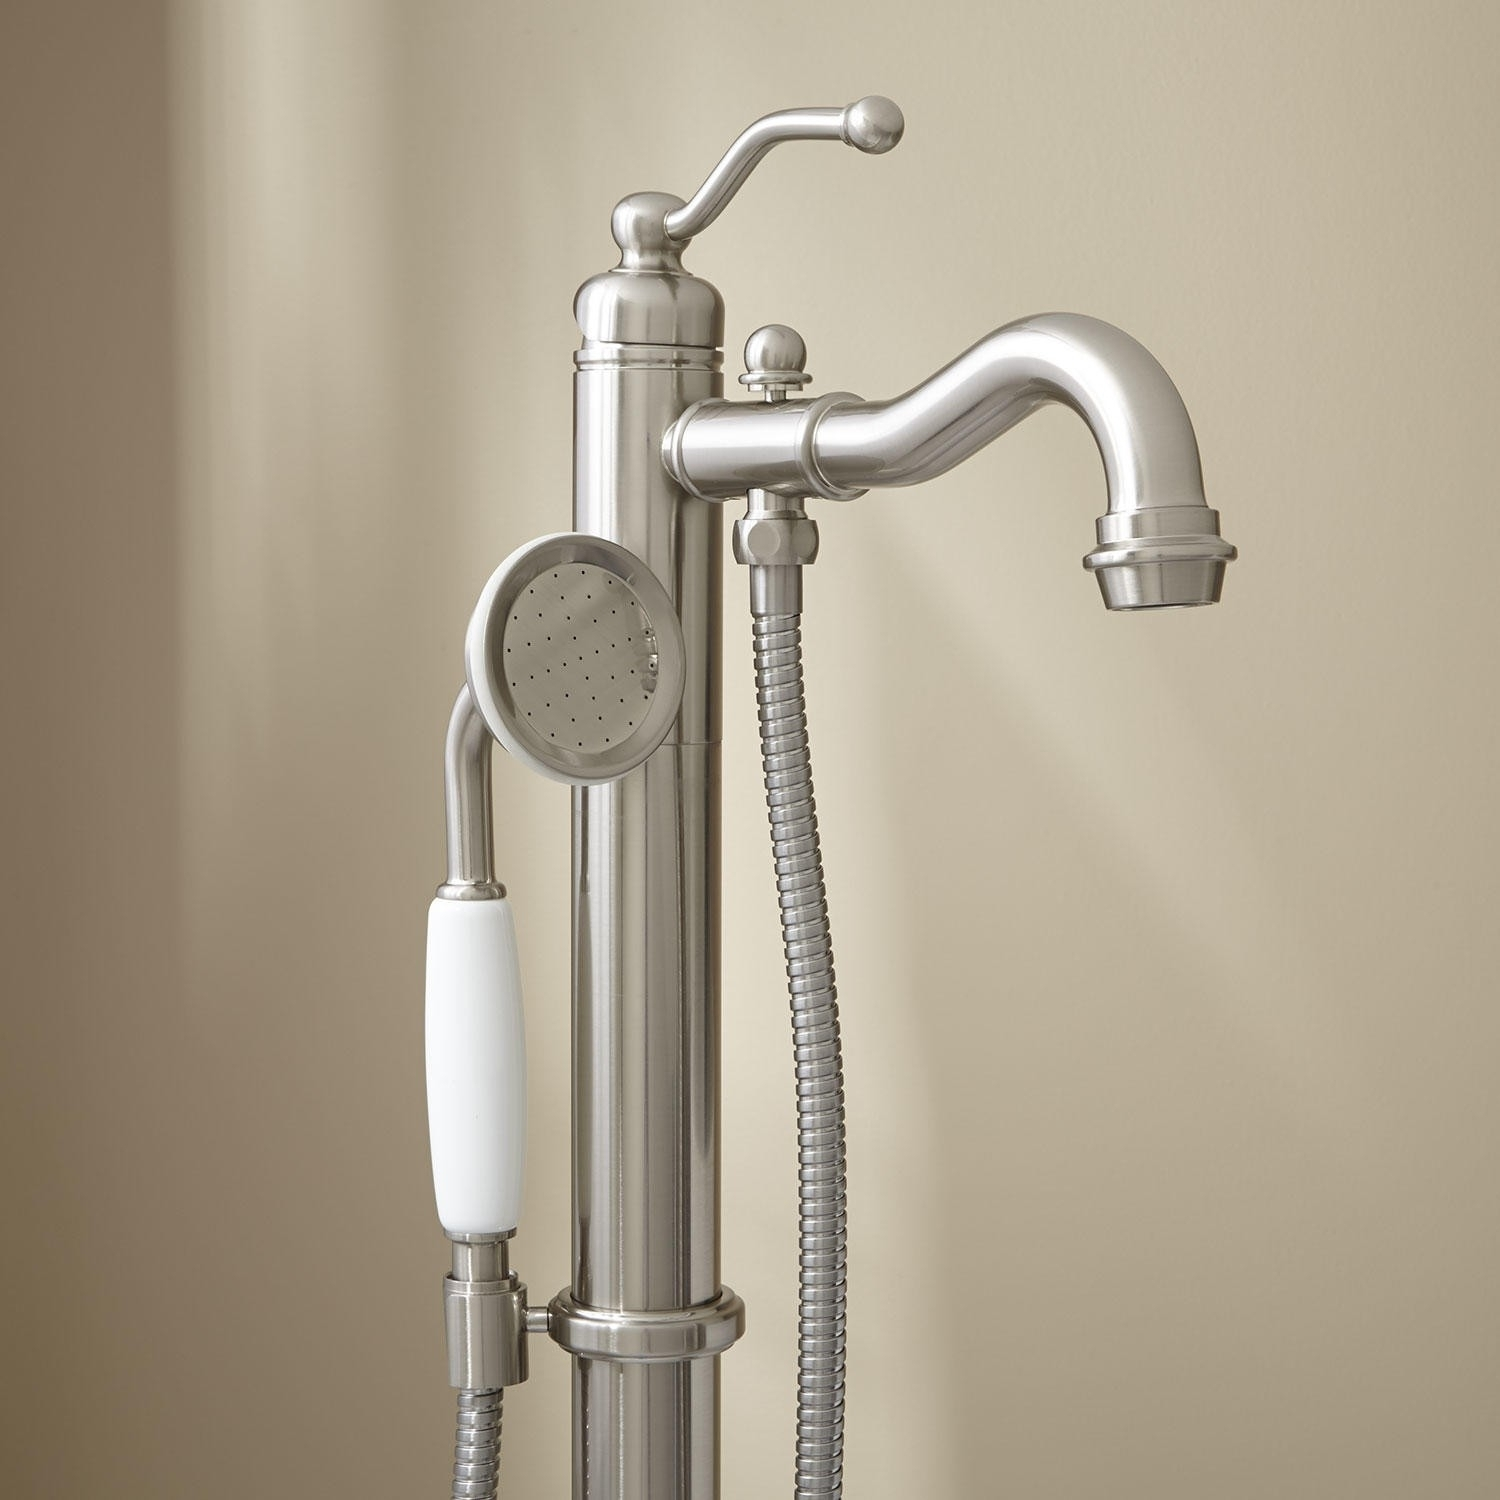 Ideas, faucets moen eva two handle roman tub faucet with hand shower for dimensions 1500 x 1500  .